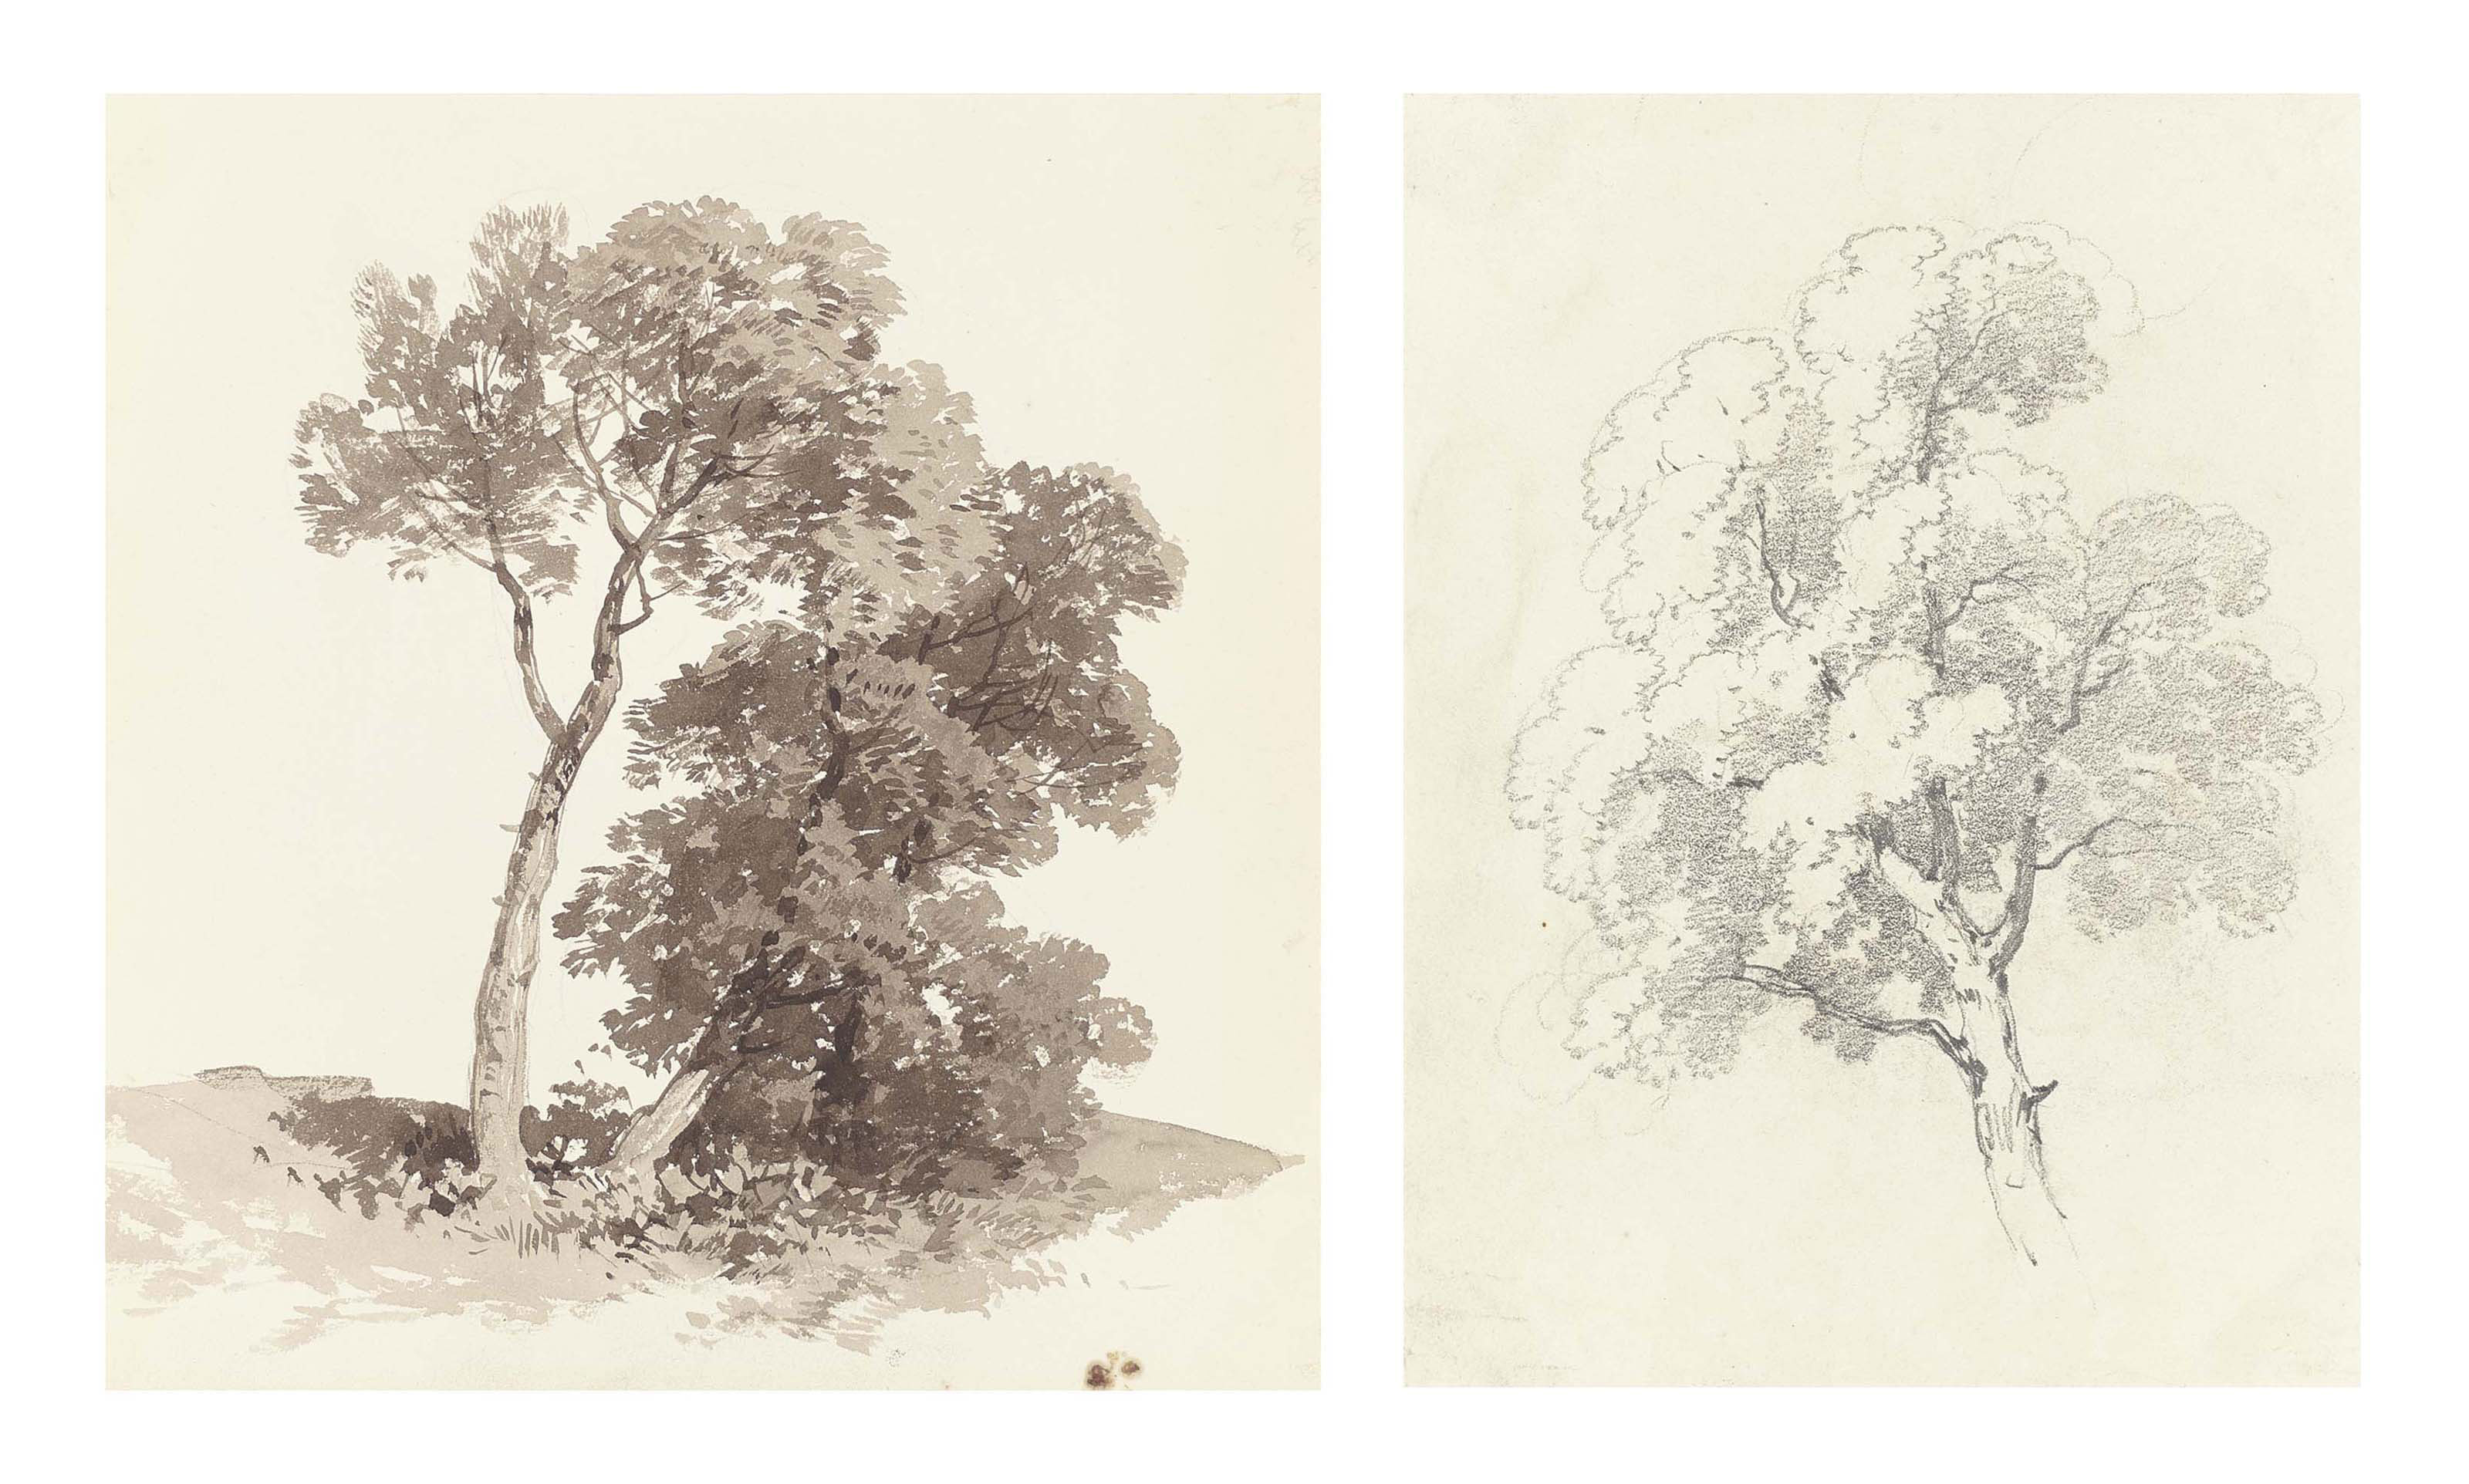 An album of fifty-one drawings and watercolours comprising: 24 studies of trees, two of rocks, four of a house, one of a house beside a tree, four of rocks and trees, two of felled logs, two of rocks beside a fence, eight landscapes, one landscape with a castle, one landscape with a house, one seascape with subsidary drawings of yachts, one study of grass